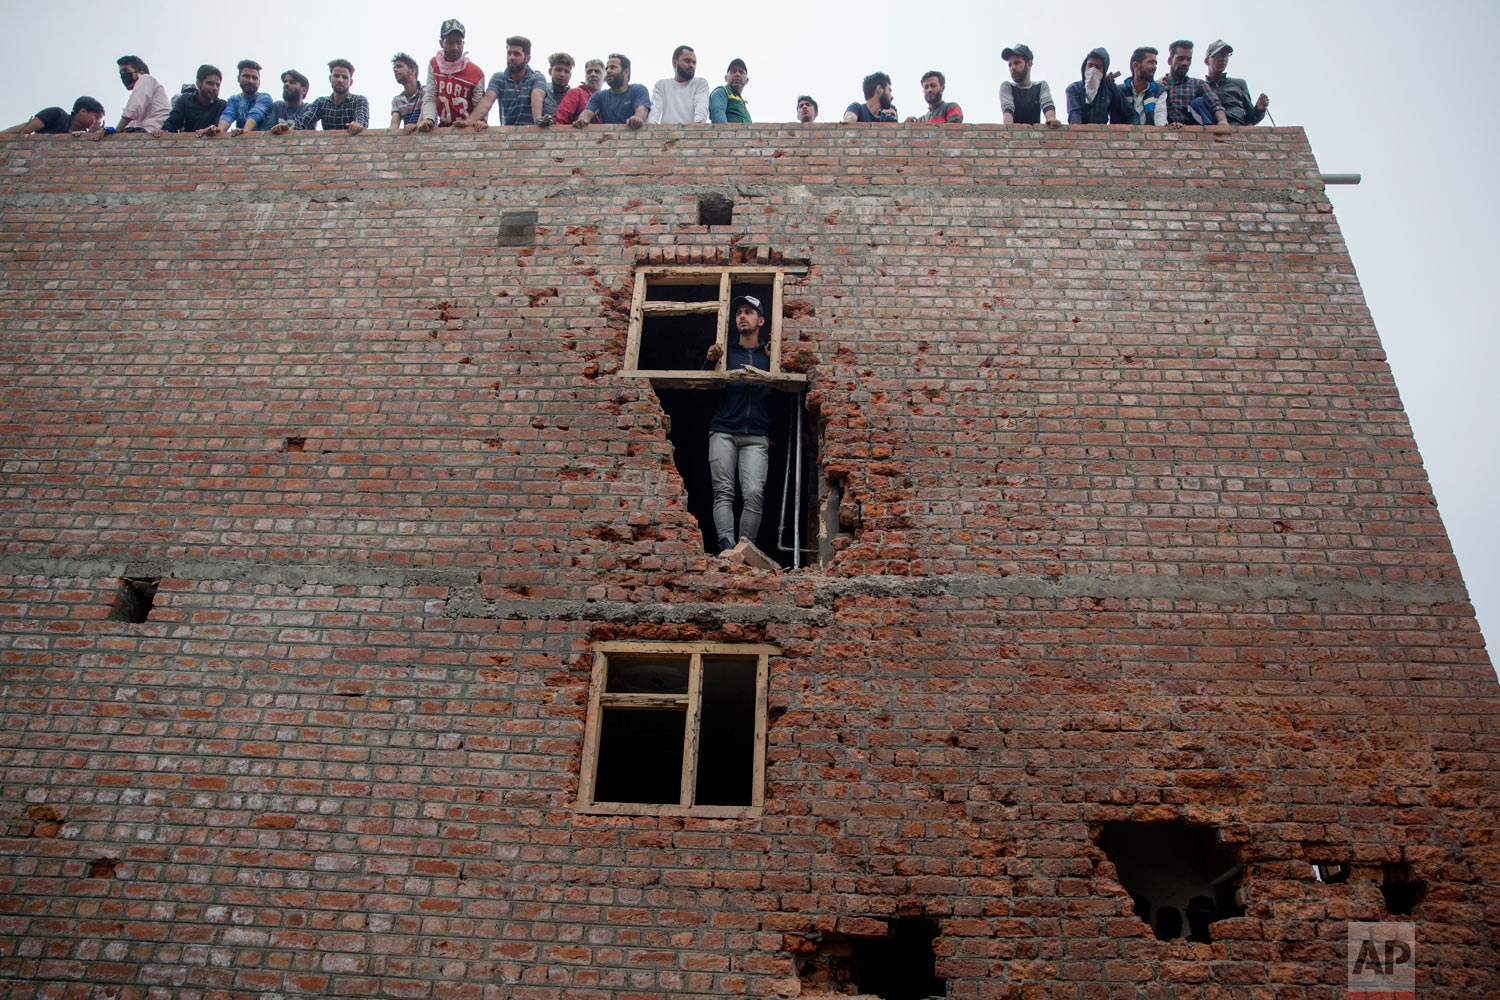 Kashmiri men inspect a house, damaged during a gun battle where suspected rebels were holed up, in Srinagar, Indian-controlled Kashmir, on Saturday, May 5, 2018. Fierce clashes erupted when residents in solidarity with the rebels tried to march to the gunbattle site. A vehicle belonging to Indian troops ran over and killed a man as protesters clashed with government forces, residents said. (AP Photo/Dar Yasin)